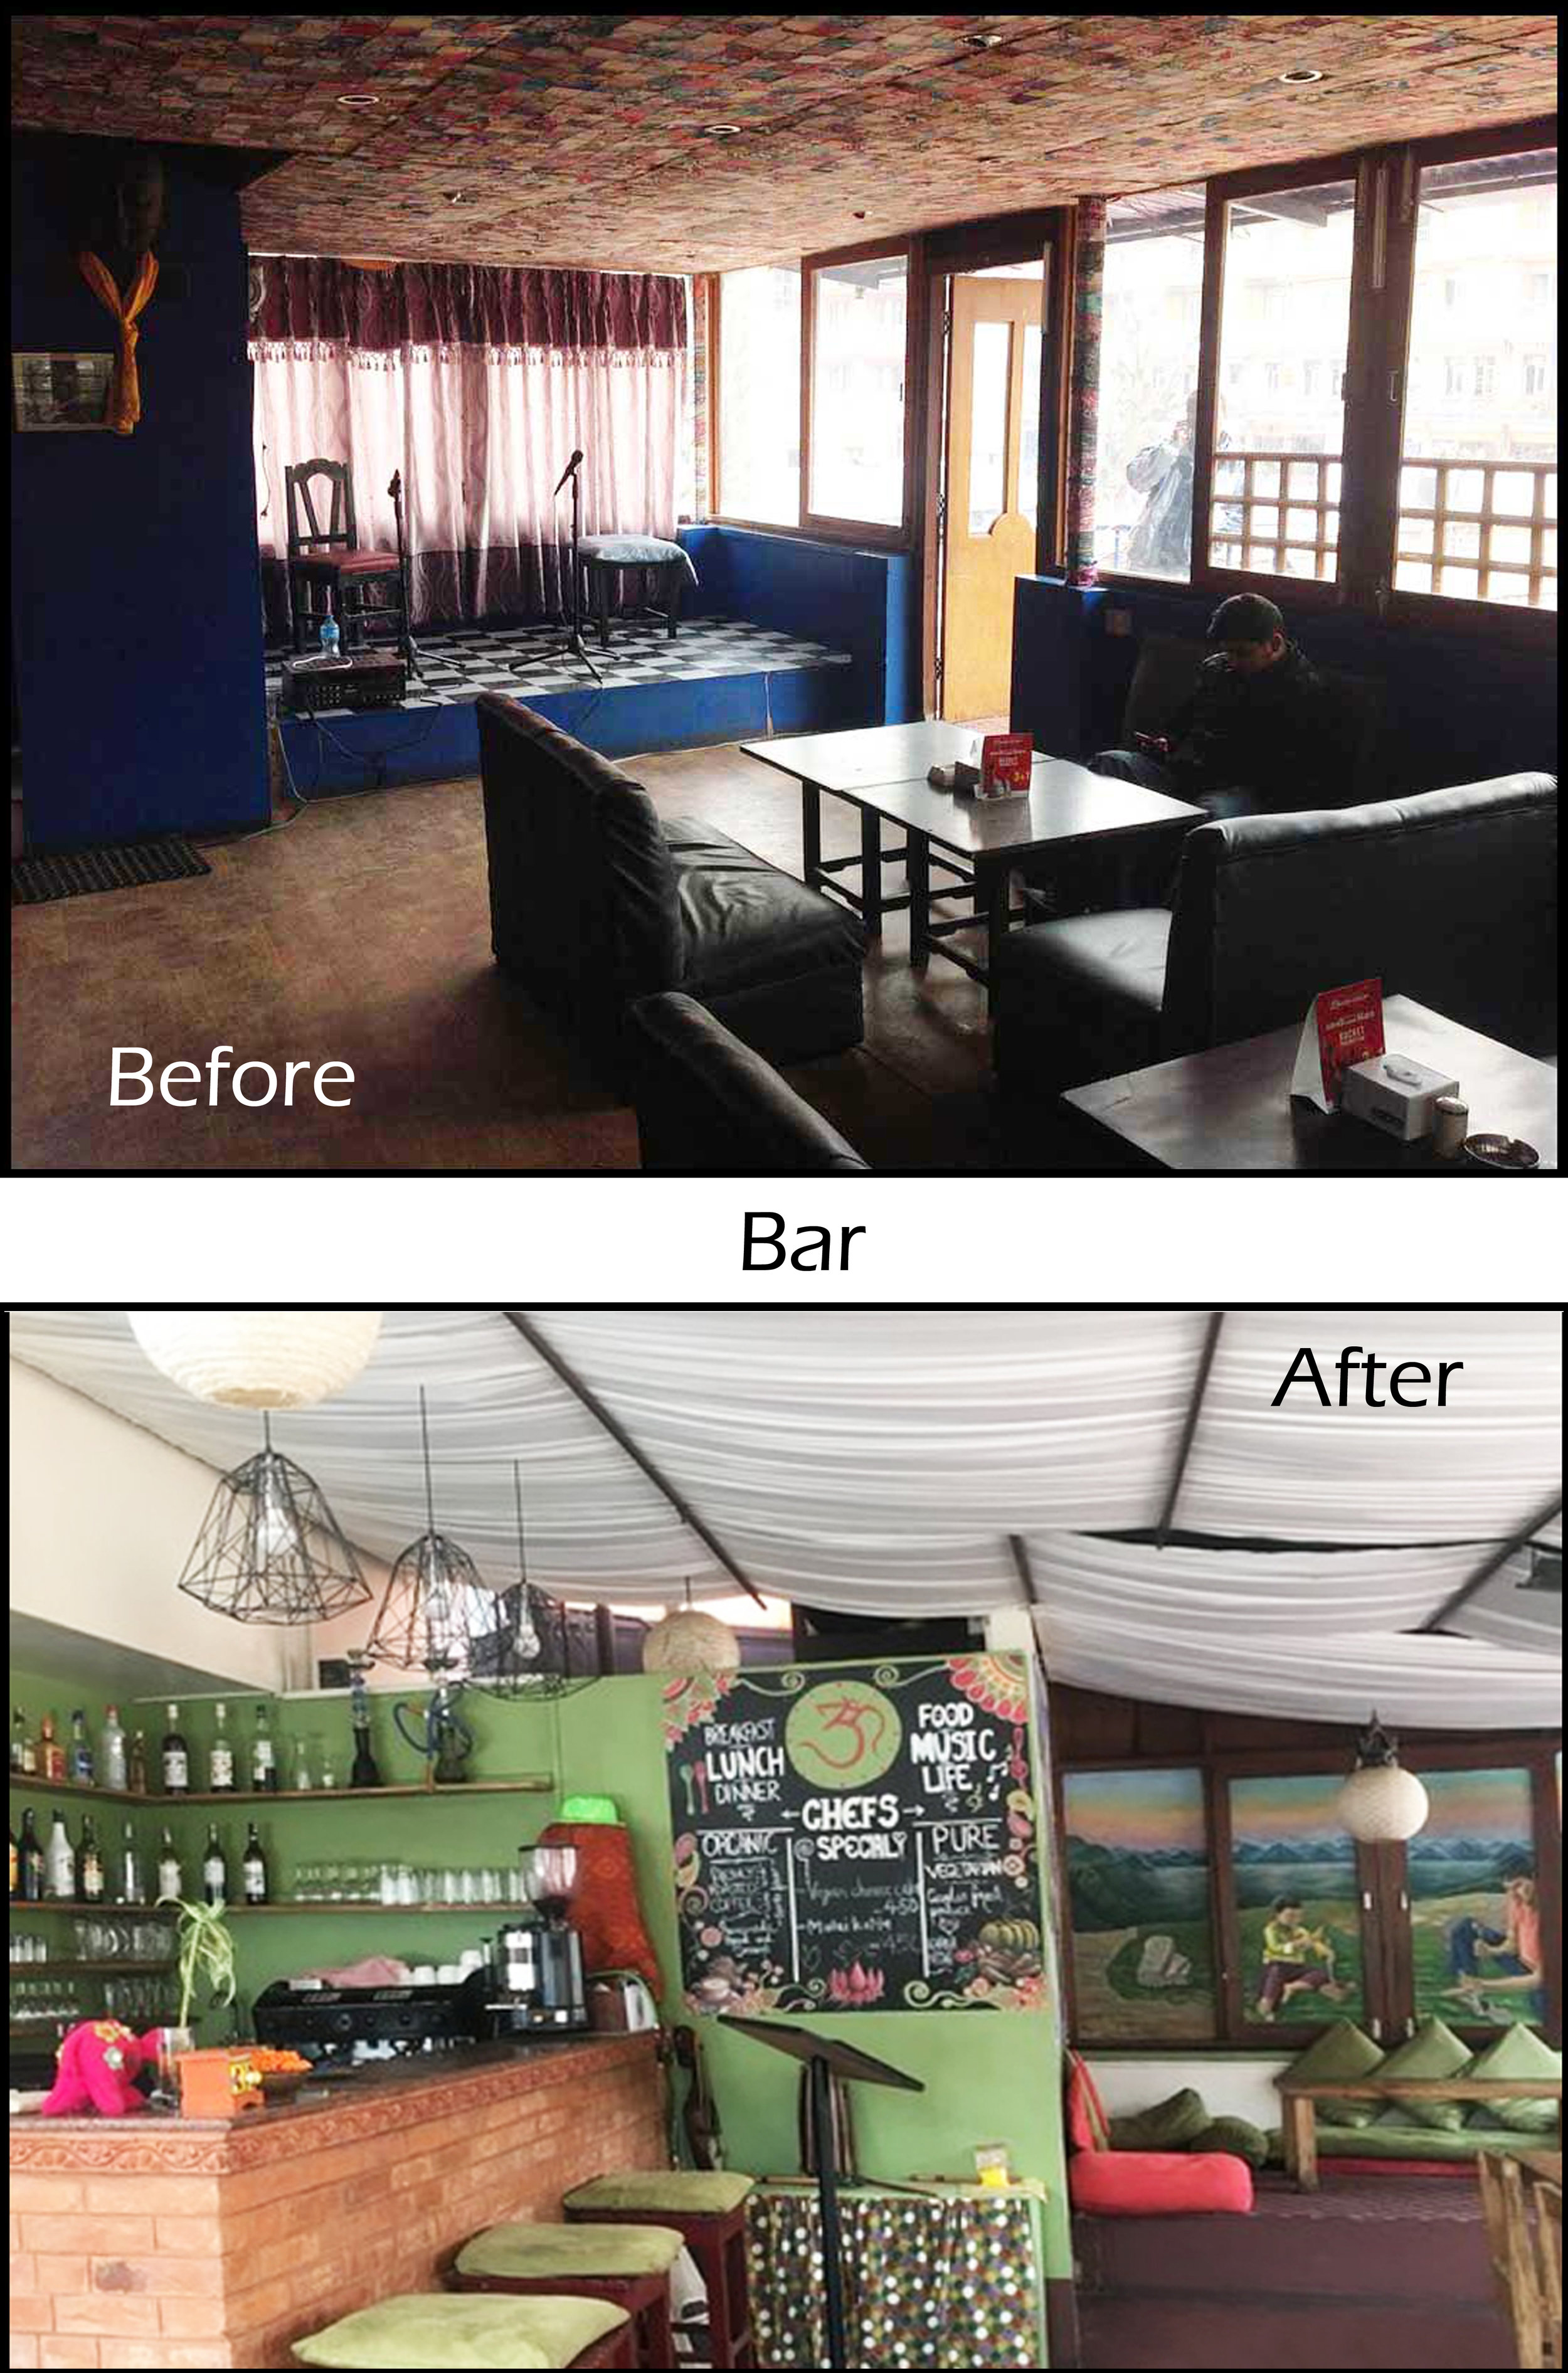 Before and after bar.jpg